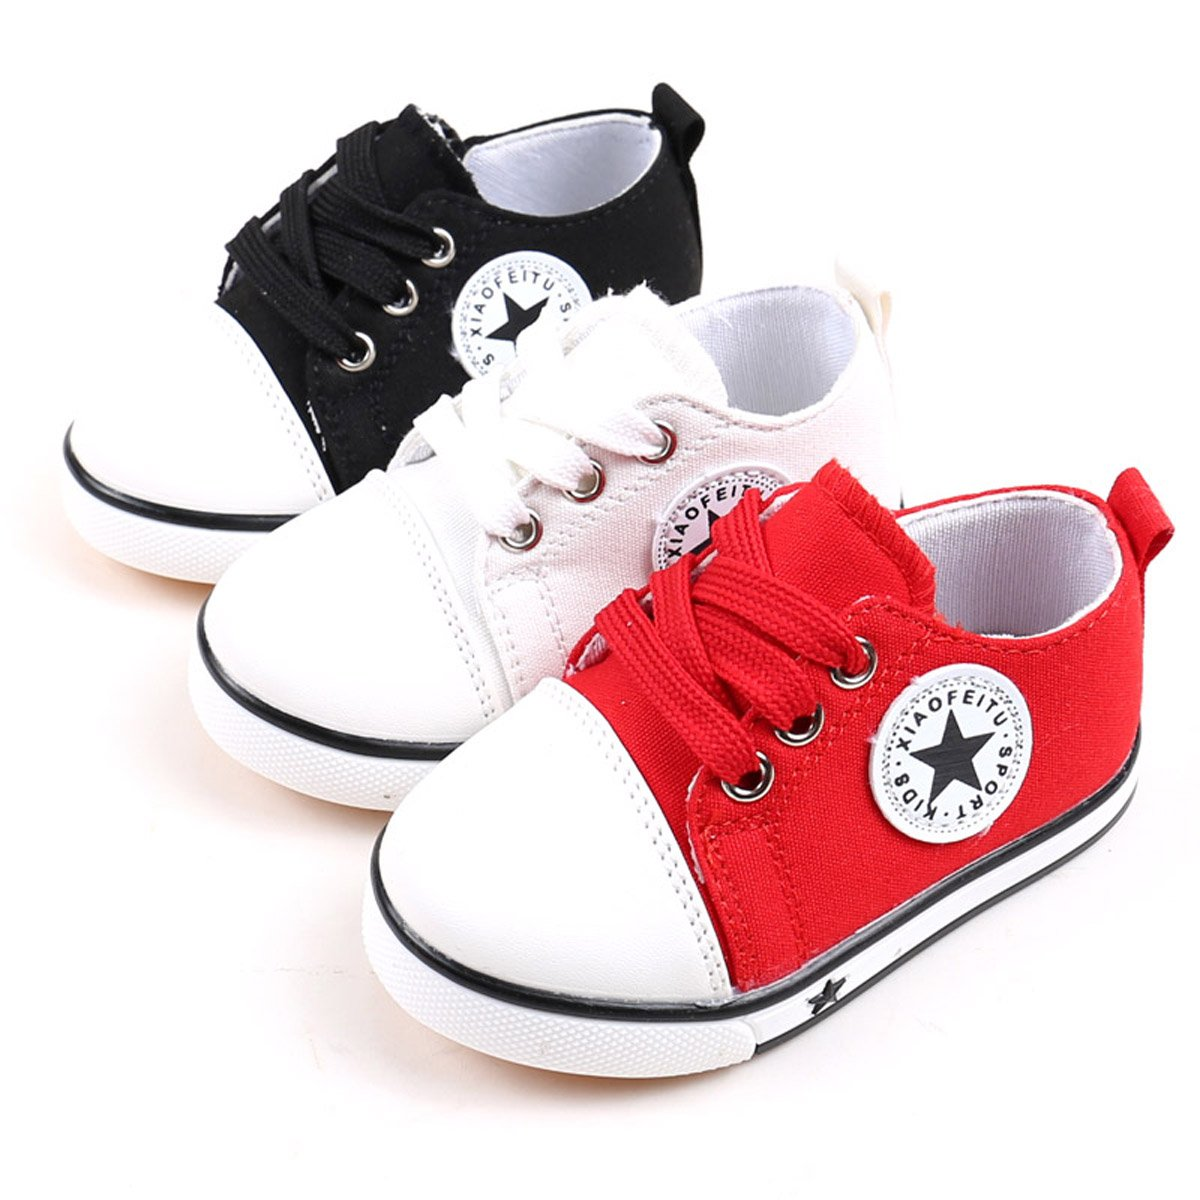 Tutoo Unisex Baby Boys Girls Shoes Kids Canvas Toddler Child Soft Sole Fashion Sneakers